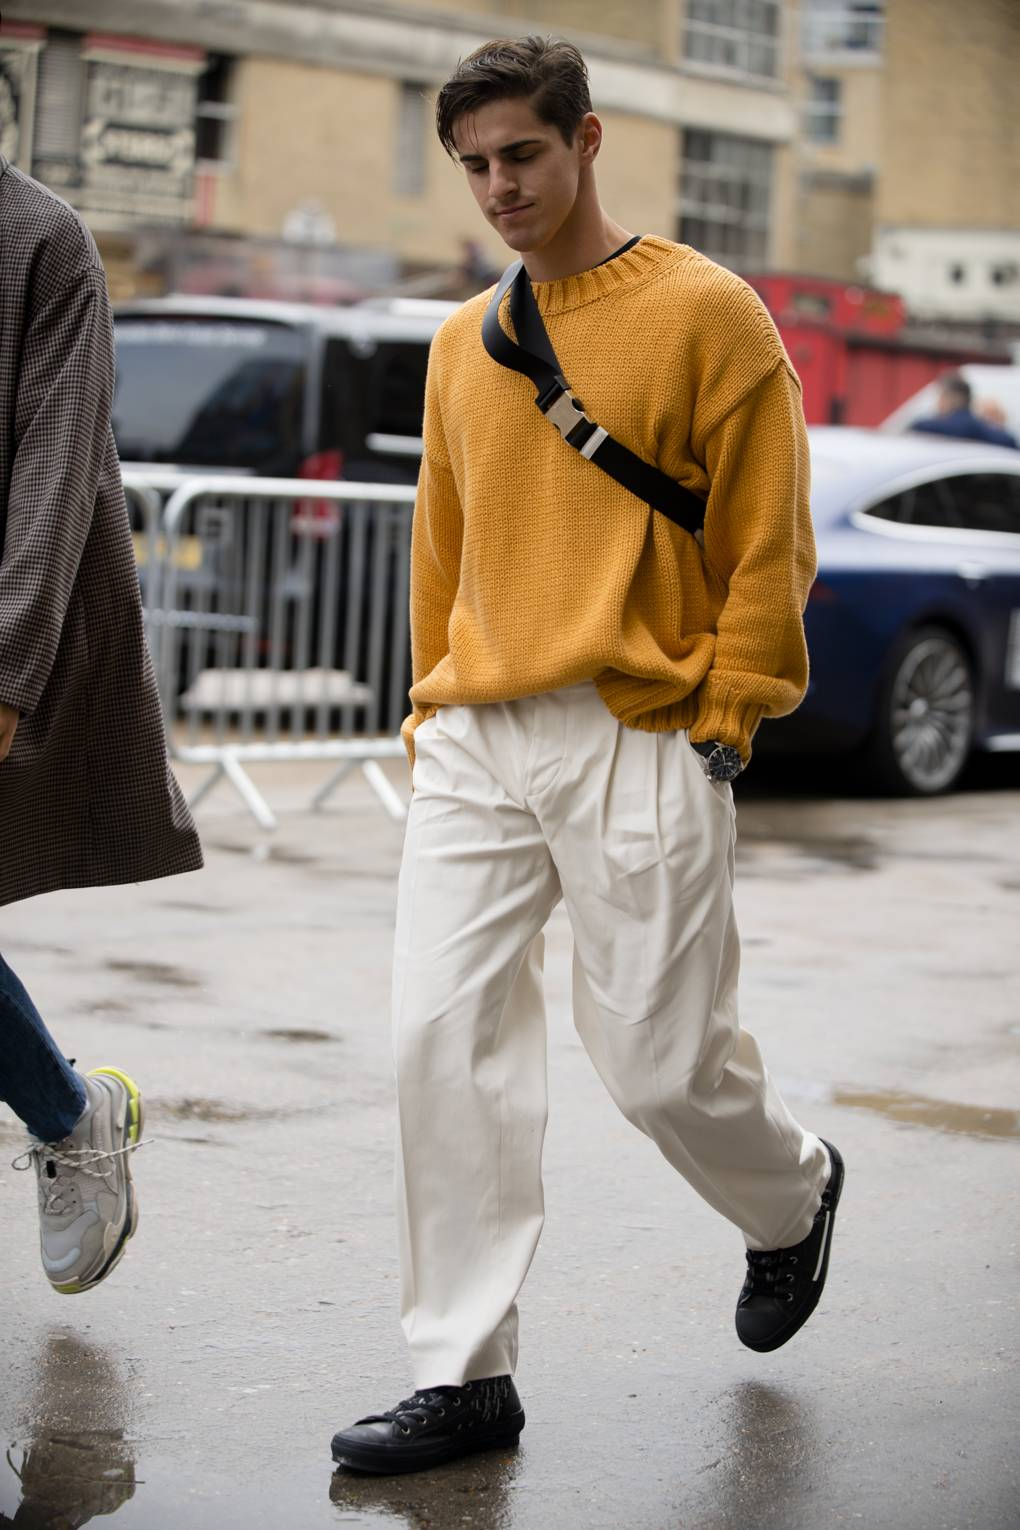 The most stand-out street style from London Fashion Week Men's SS20 #menstreetstyles